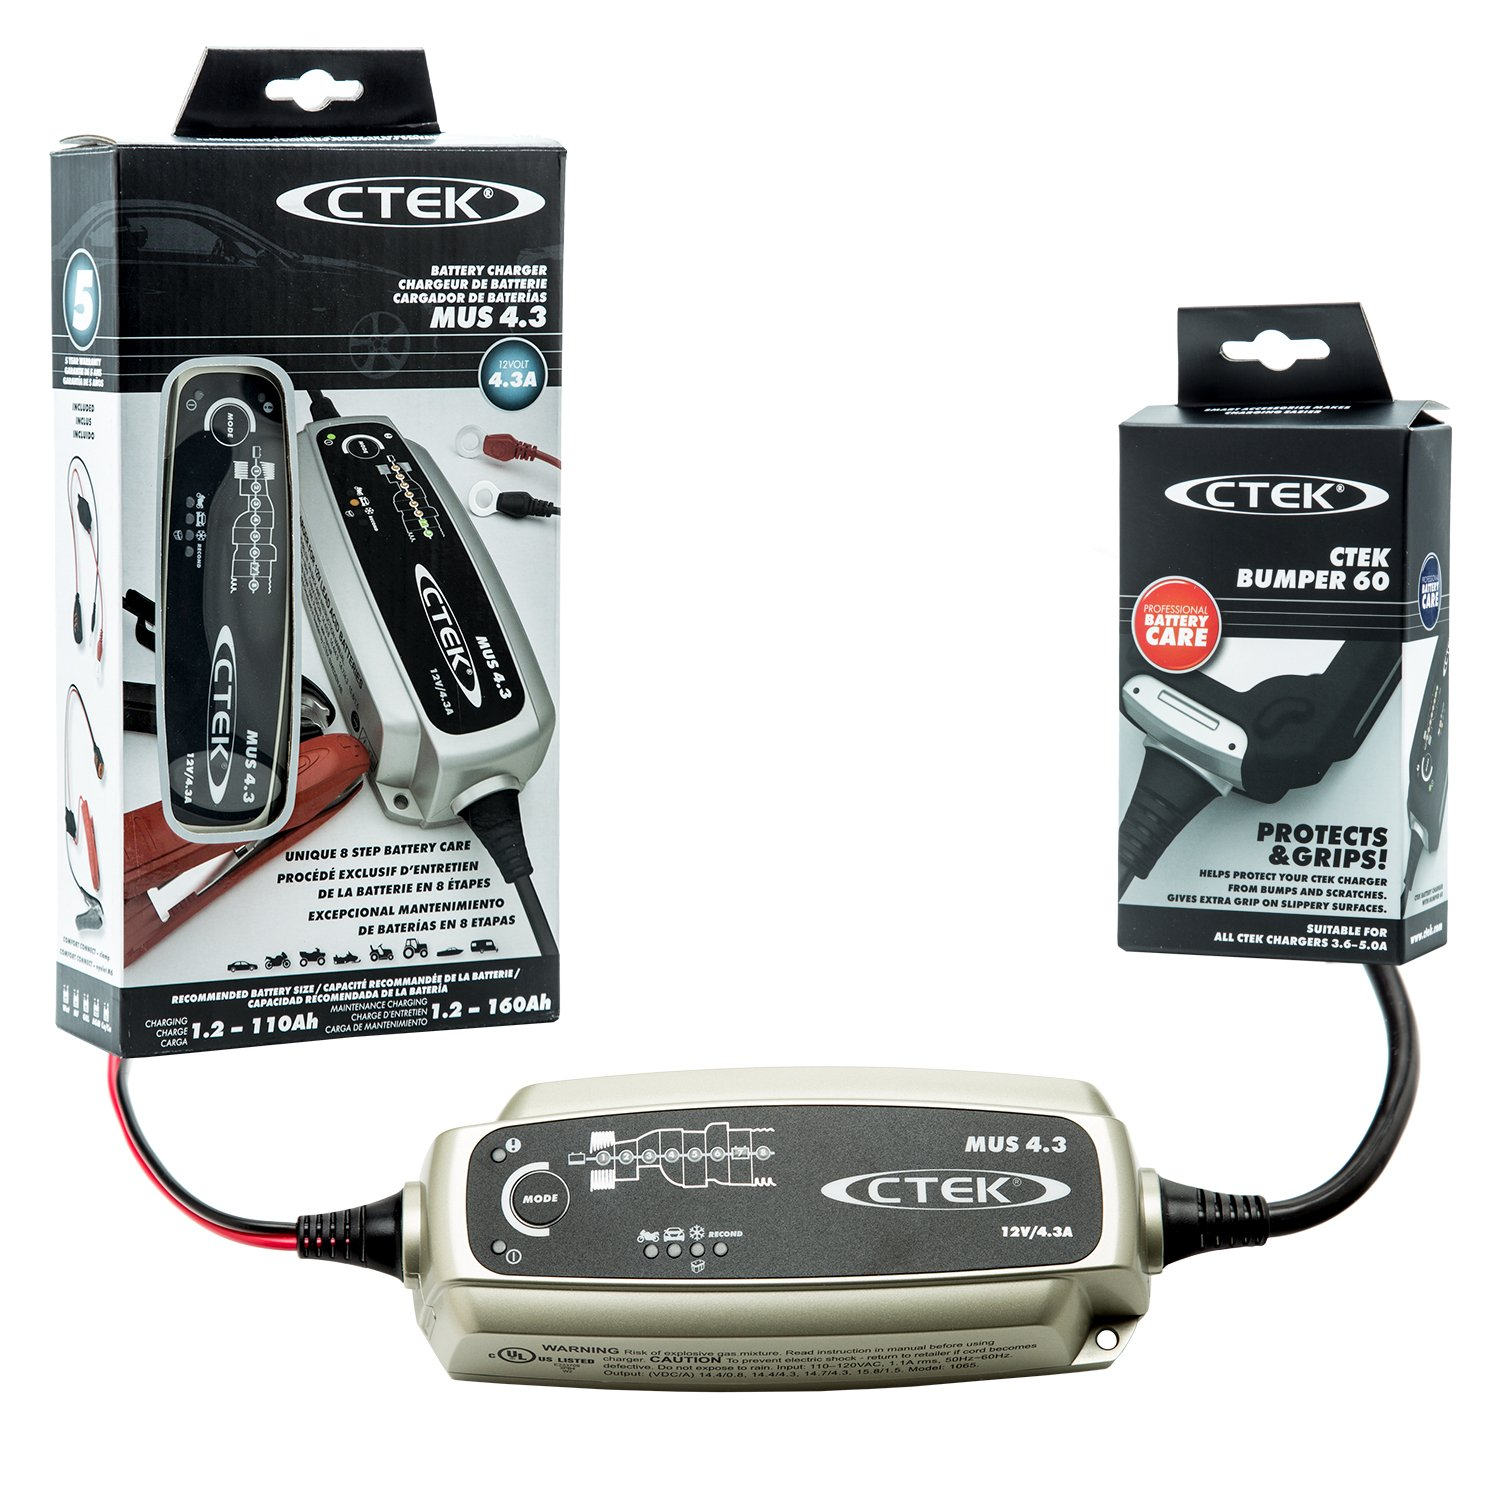 CTEK (56-864) MUS 4.3 12 Volt Fully Automatic 8 Step Battery Charger with (56-915) Black Bumper Accessory by CTEK